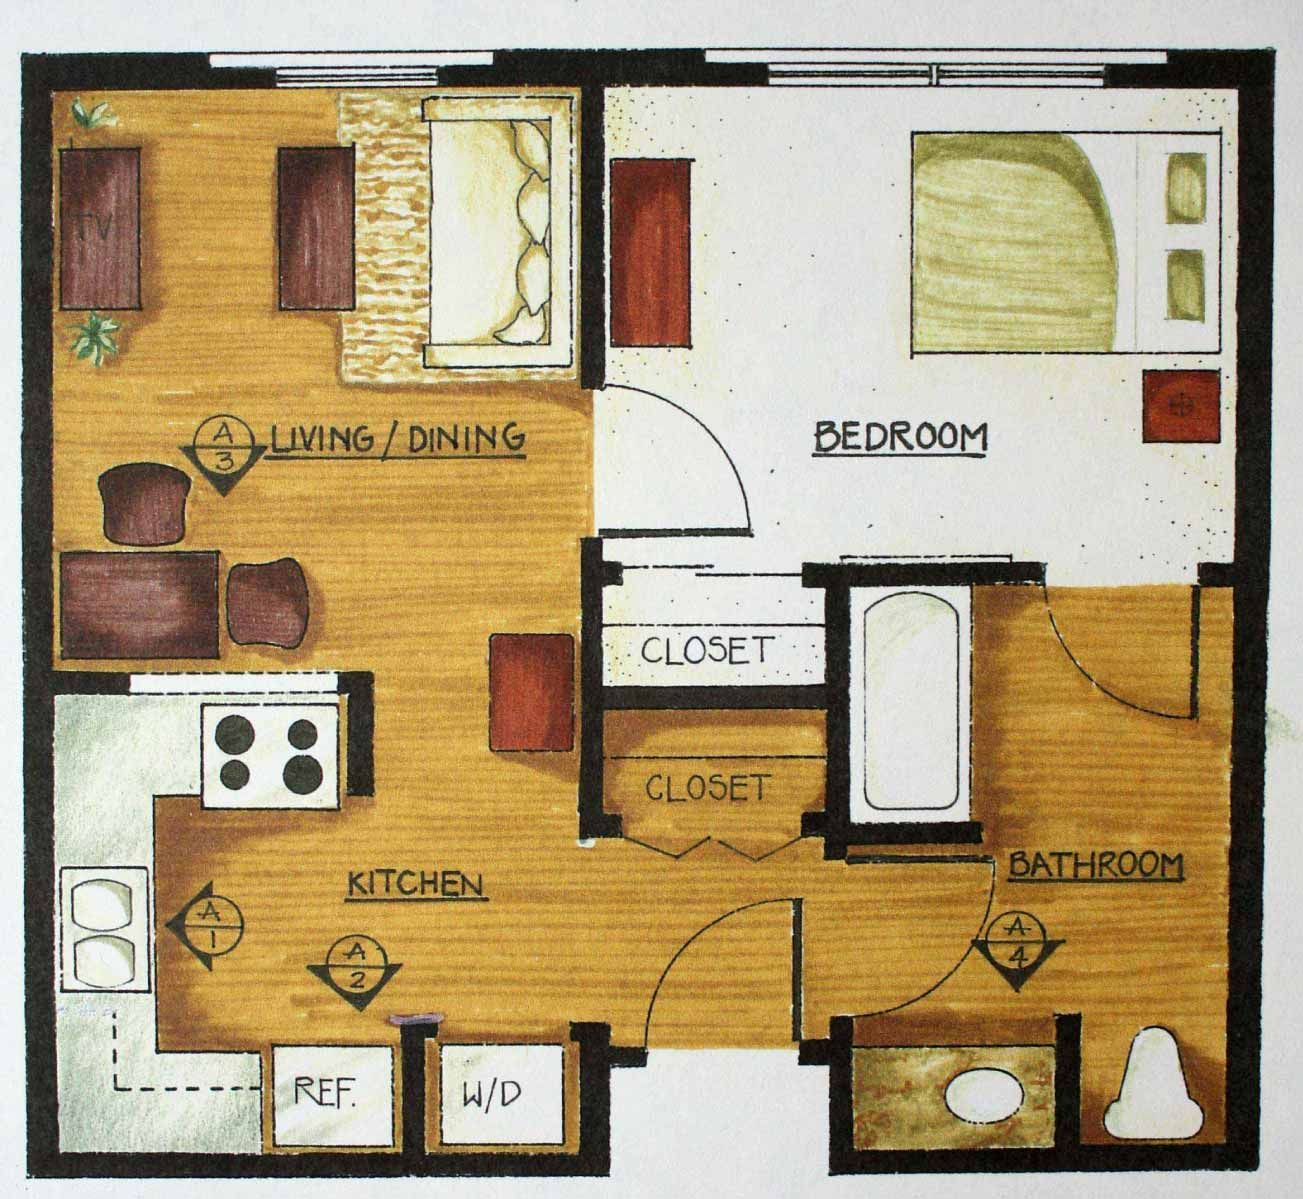 Simple floor plan    nice for mother in law    has 2 closets  washer     Simple floor plan    nice for mother in law    has 2 closets   washer dryer    I like it